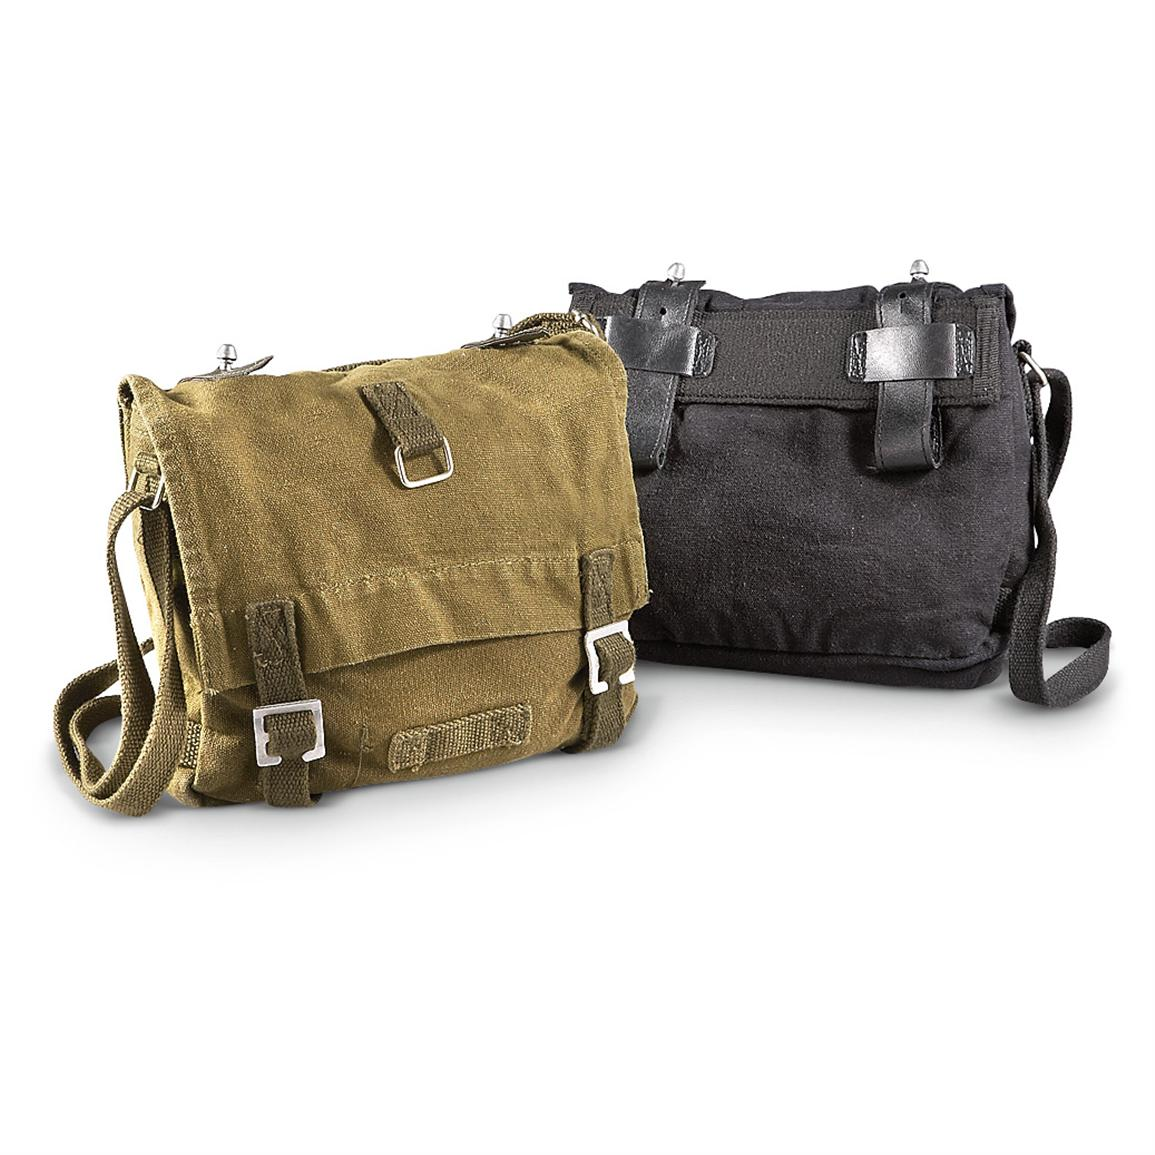 Mil-Tec® Military-style Shoulder / Bread Bag, Olive Drab / Black; 200-cu. in. capacity